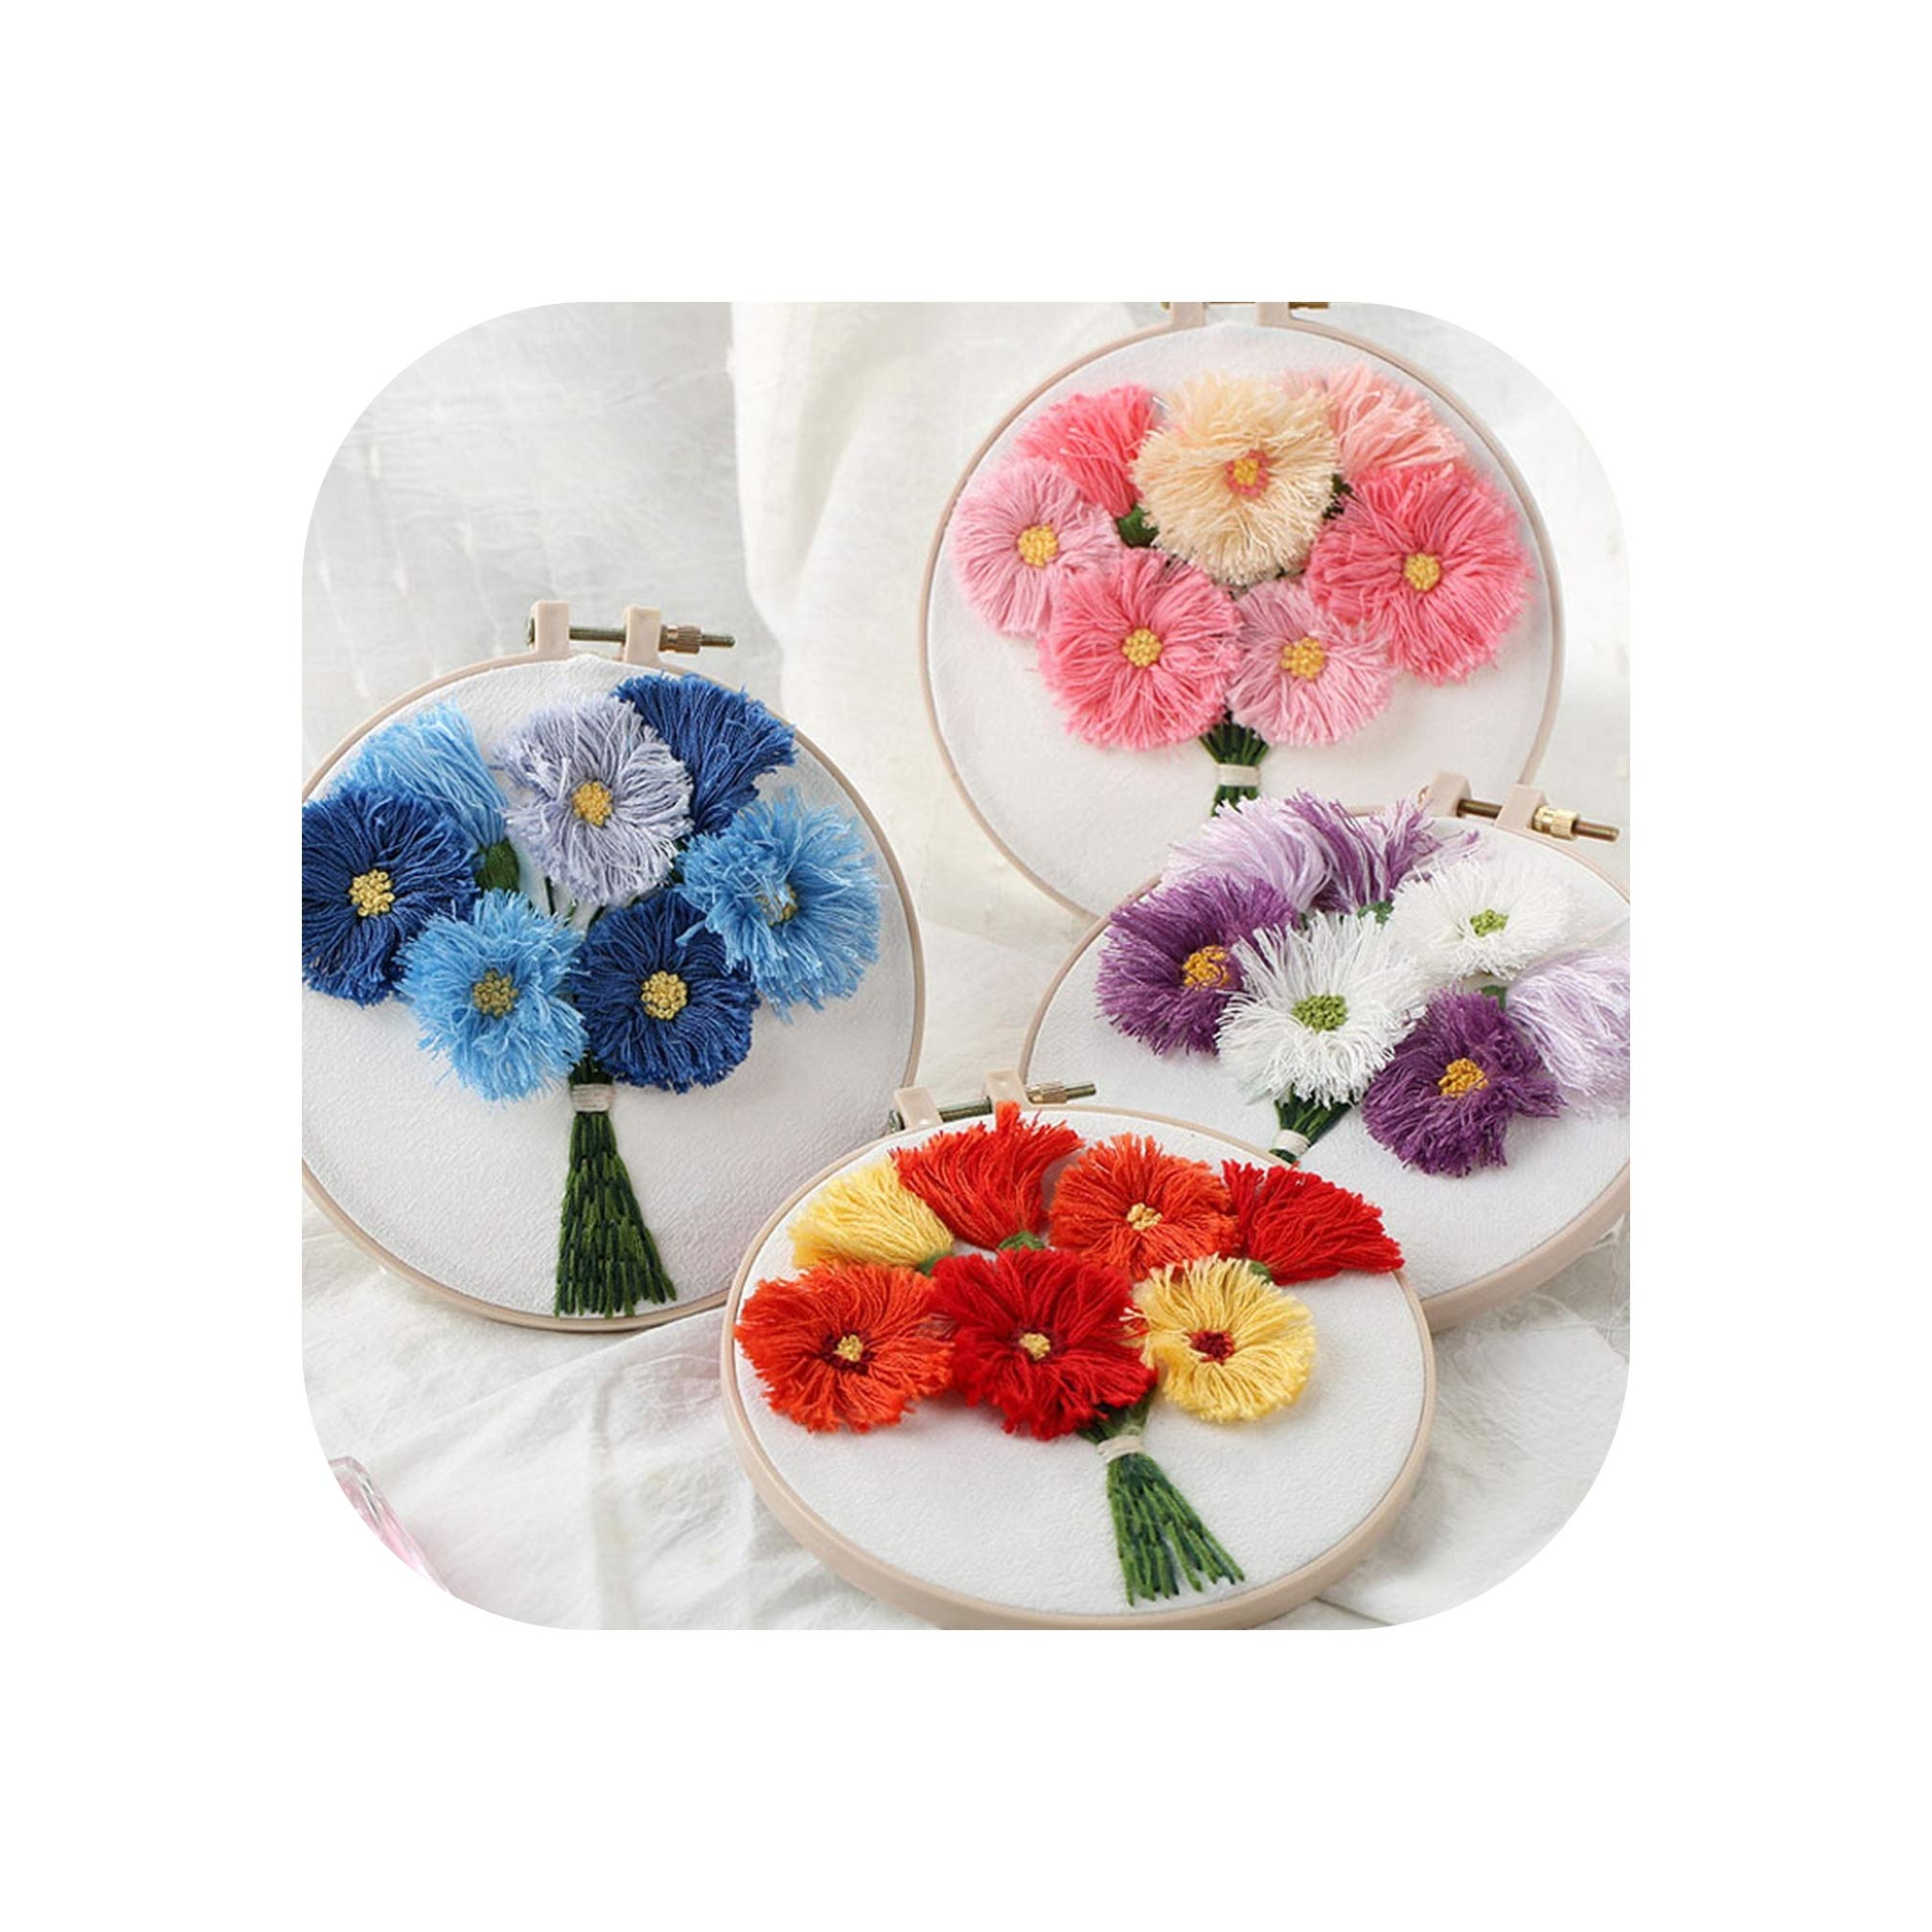 DIY Daisy 3D Embroidery Kit with Hoop Needlework Kits Cross Stitch Set Arts Crafts Sewing Embroidery Wall Painting Handmade Art,4 pcs,15cm Plastic Hoop by koweis